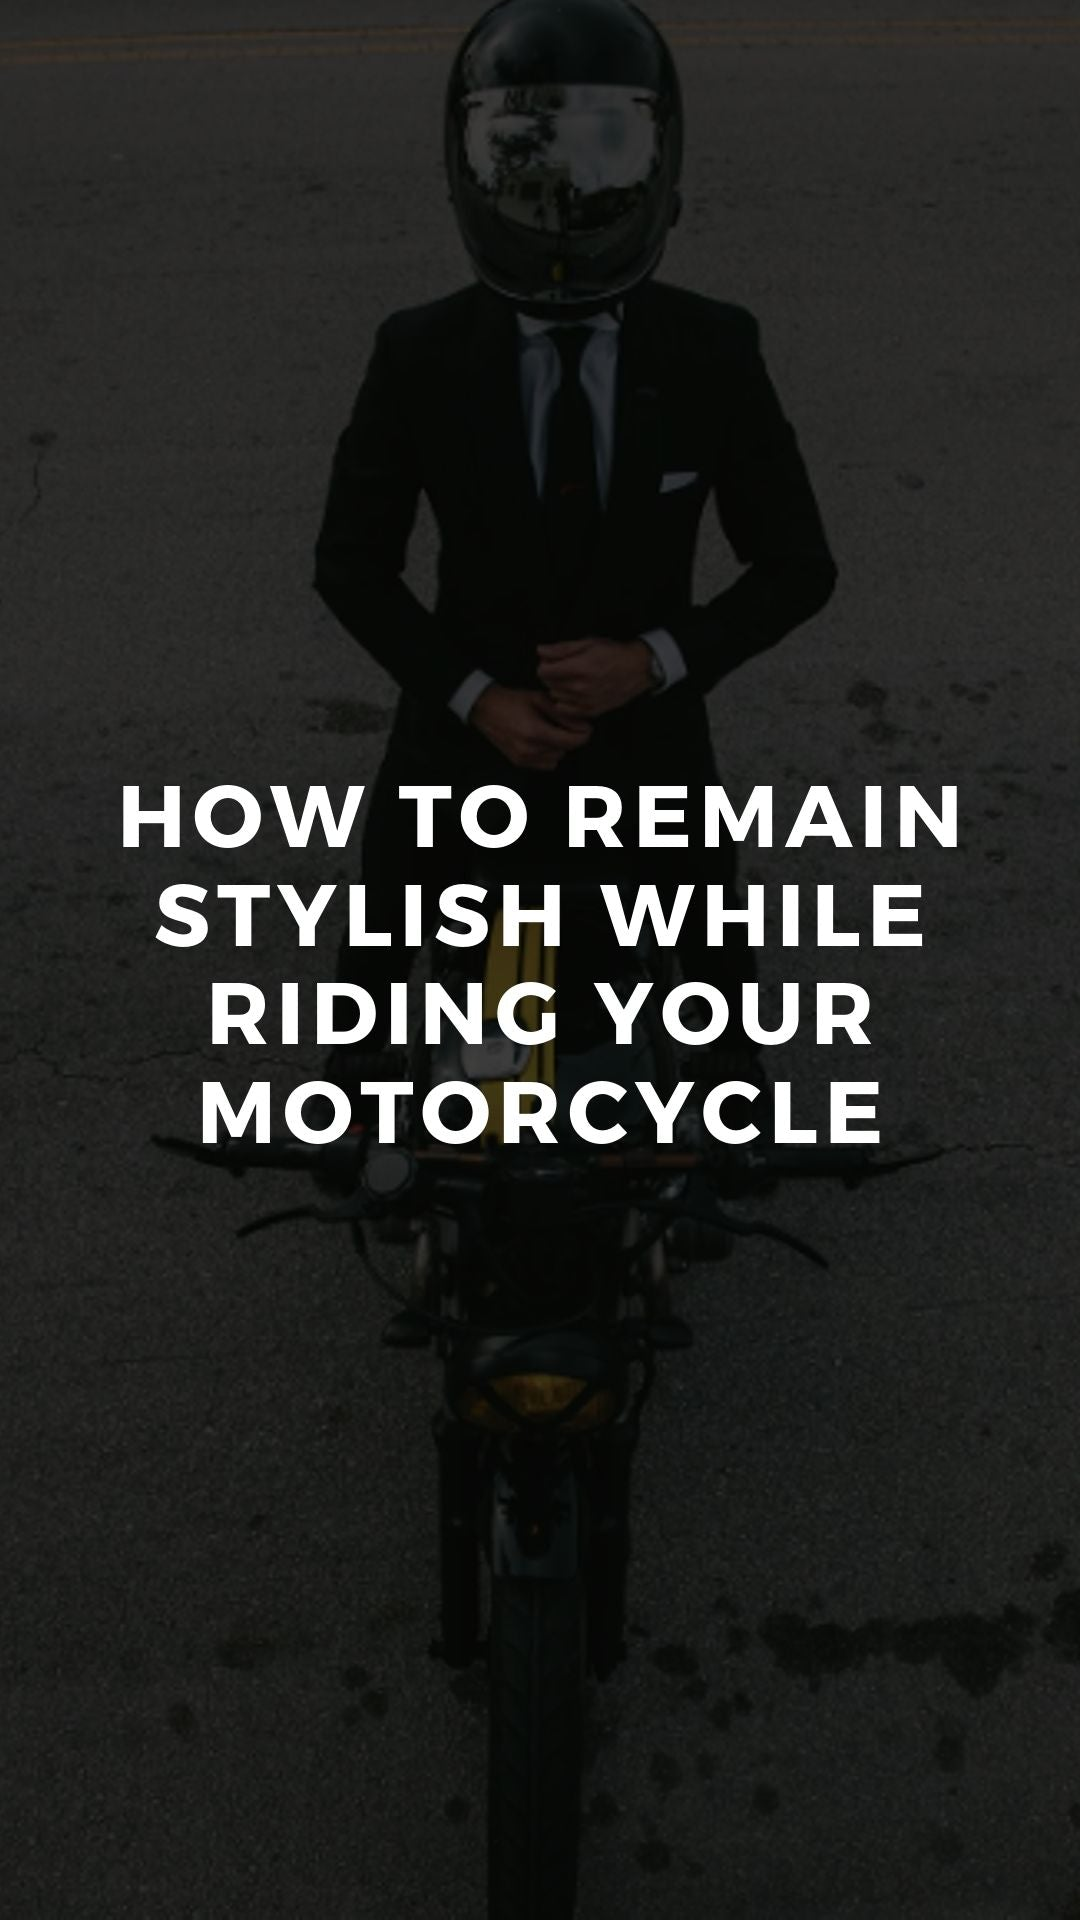 How to Remain Stylish While Riding Your Motorcycle